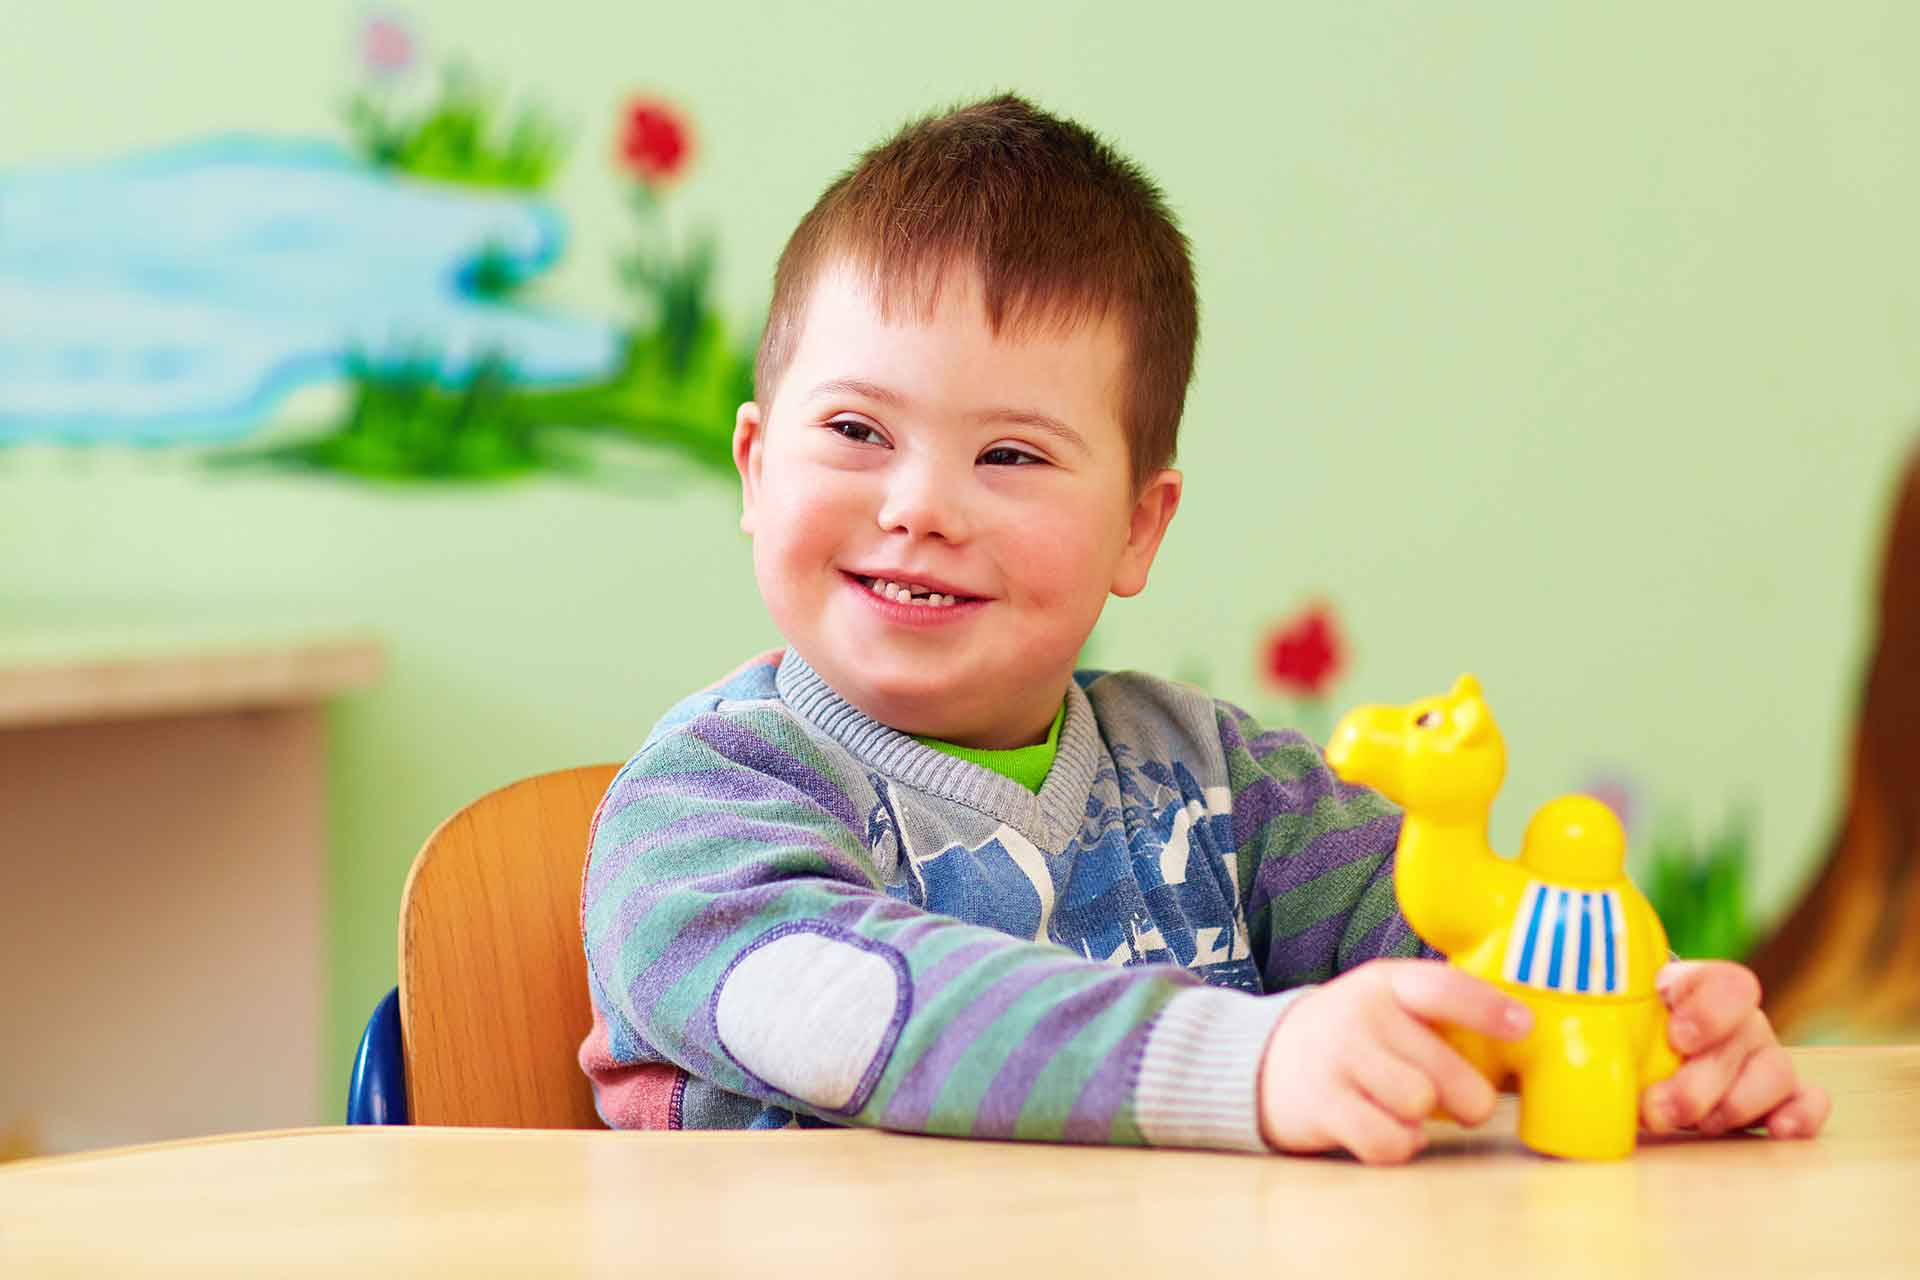 a Child with Down Syndrome plays with a toy